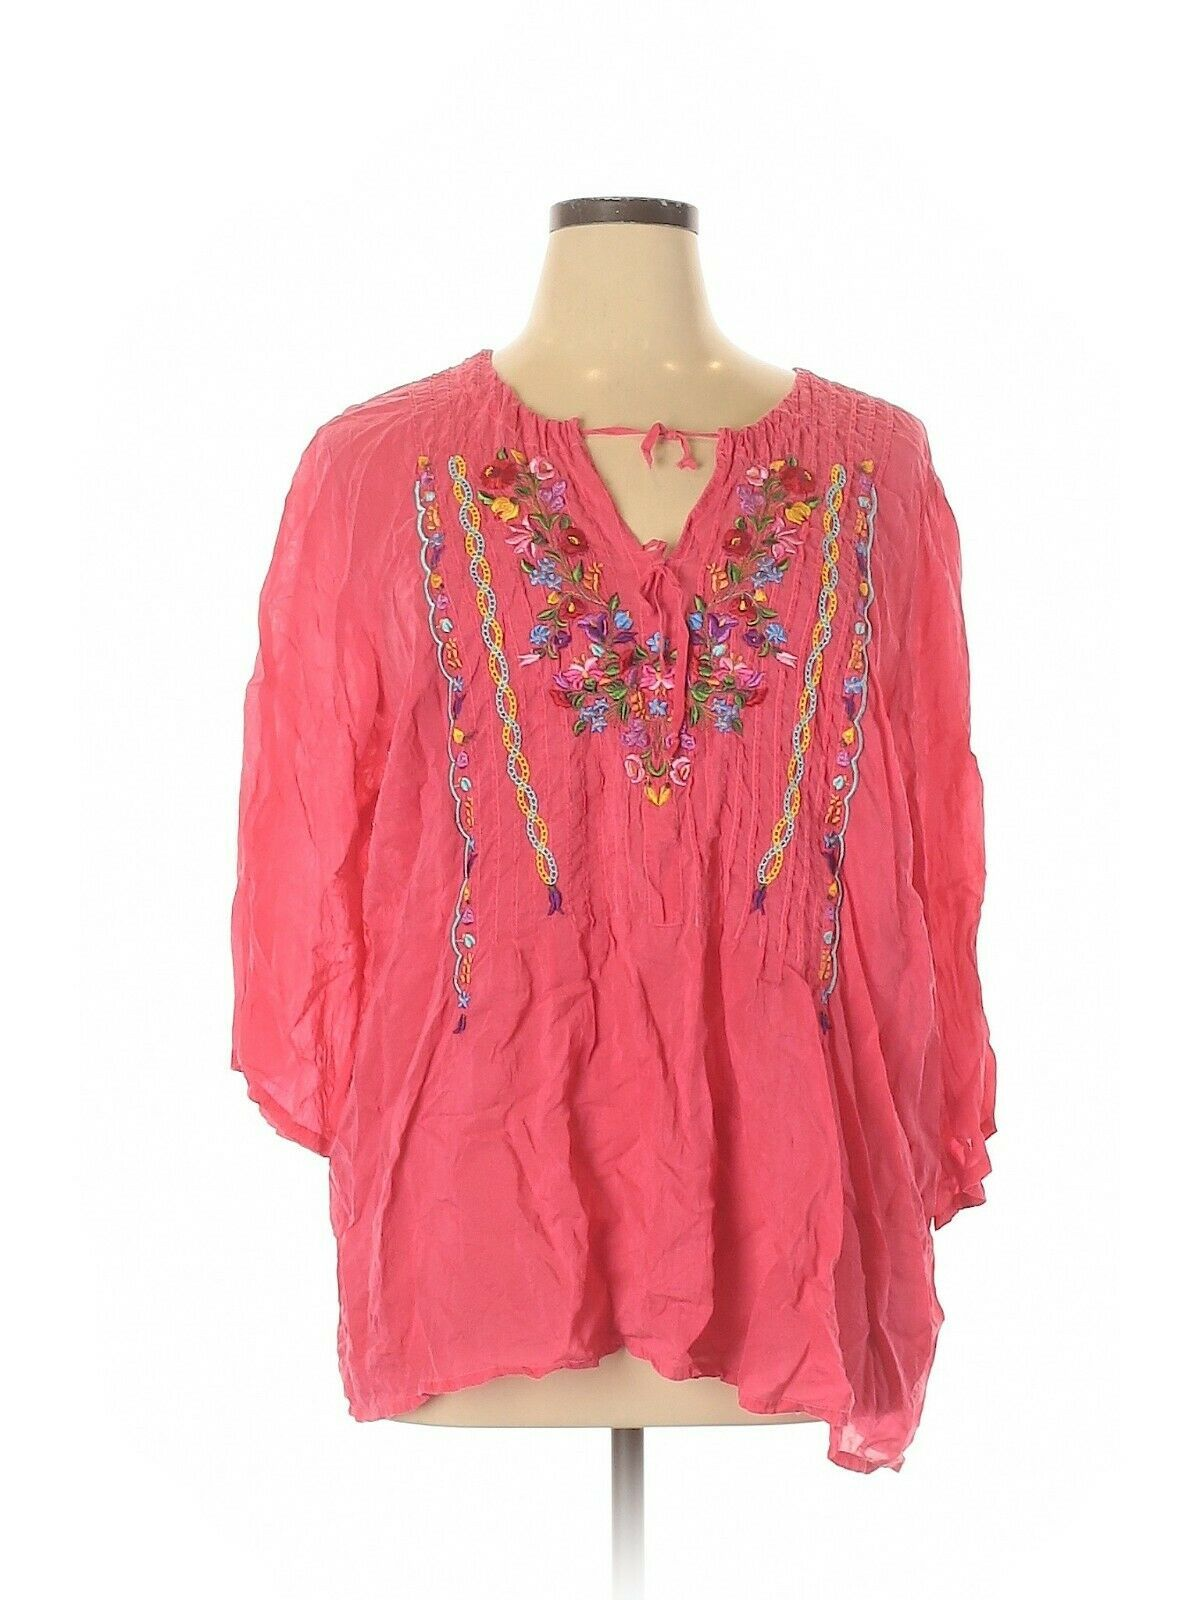 Johnny Was Women's Top Plus Size 1X Tunic Pink Boho Embroidered Relaxed Fit image 3